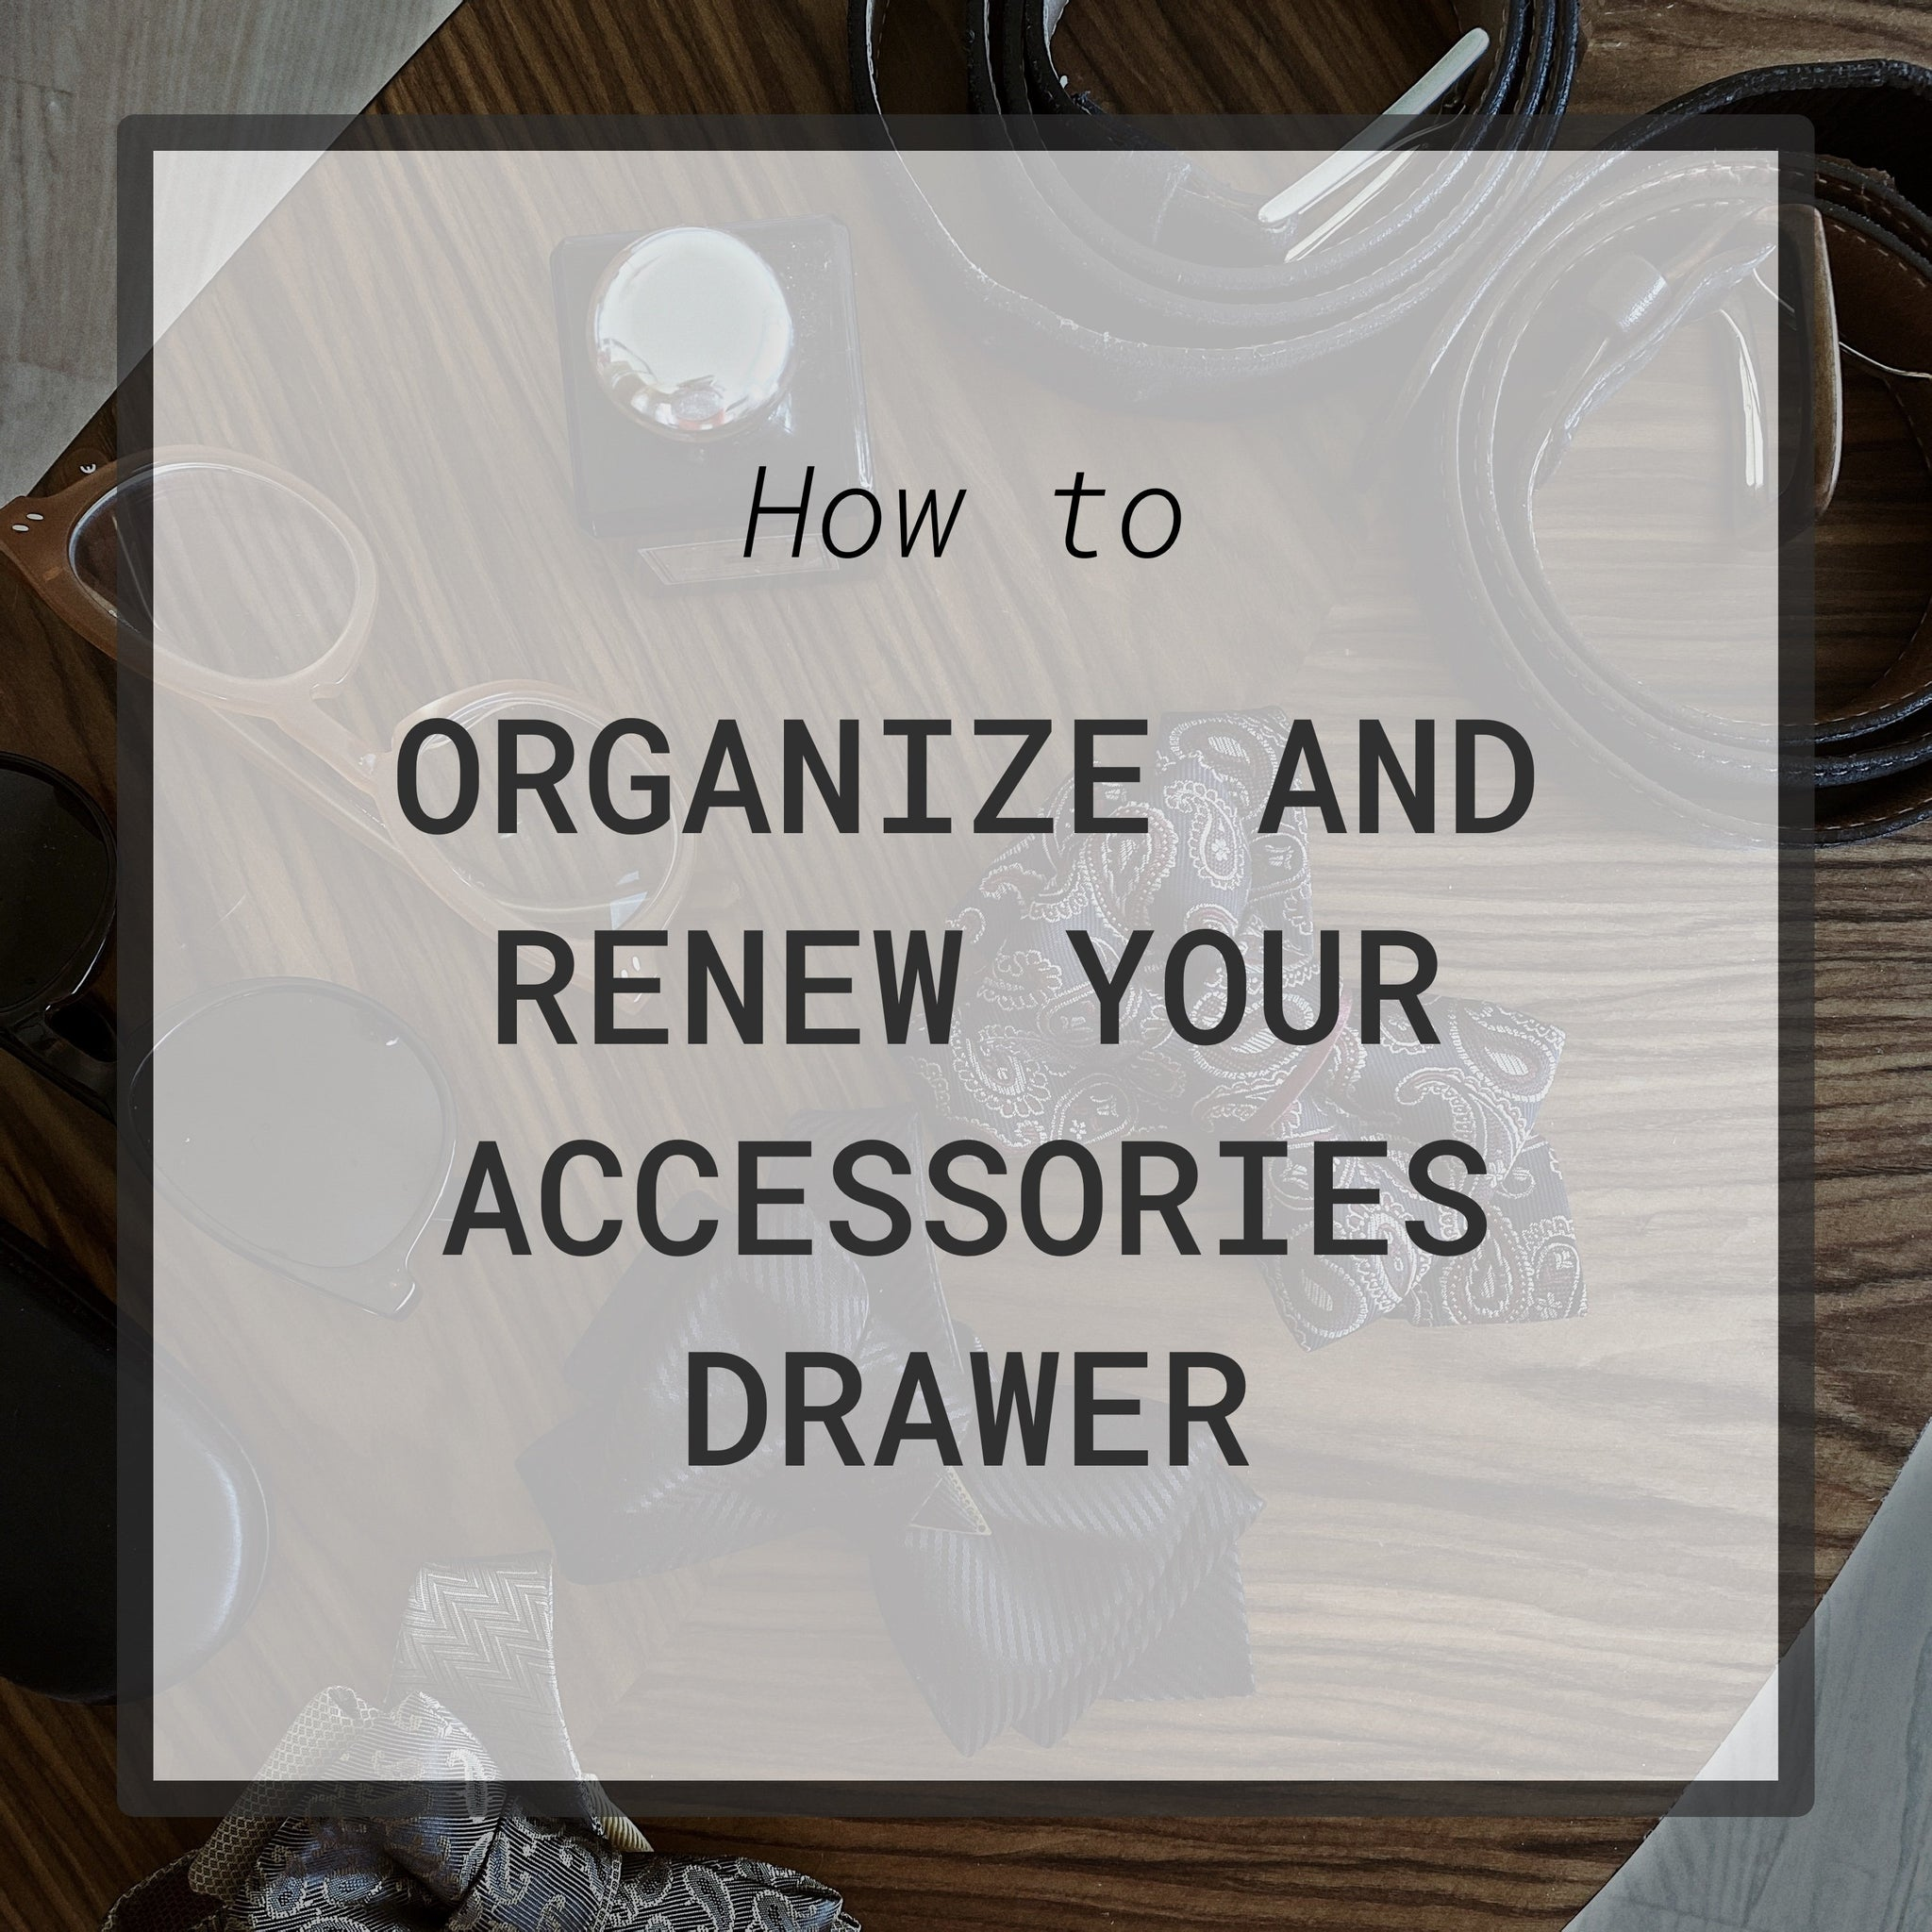 How to organize and renew your accessories drawer?